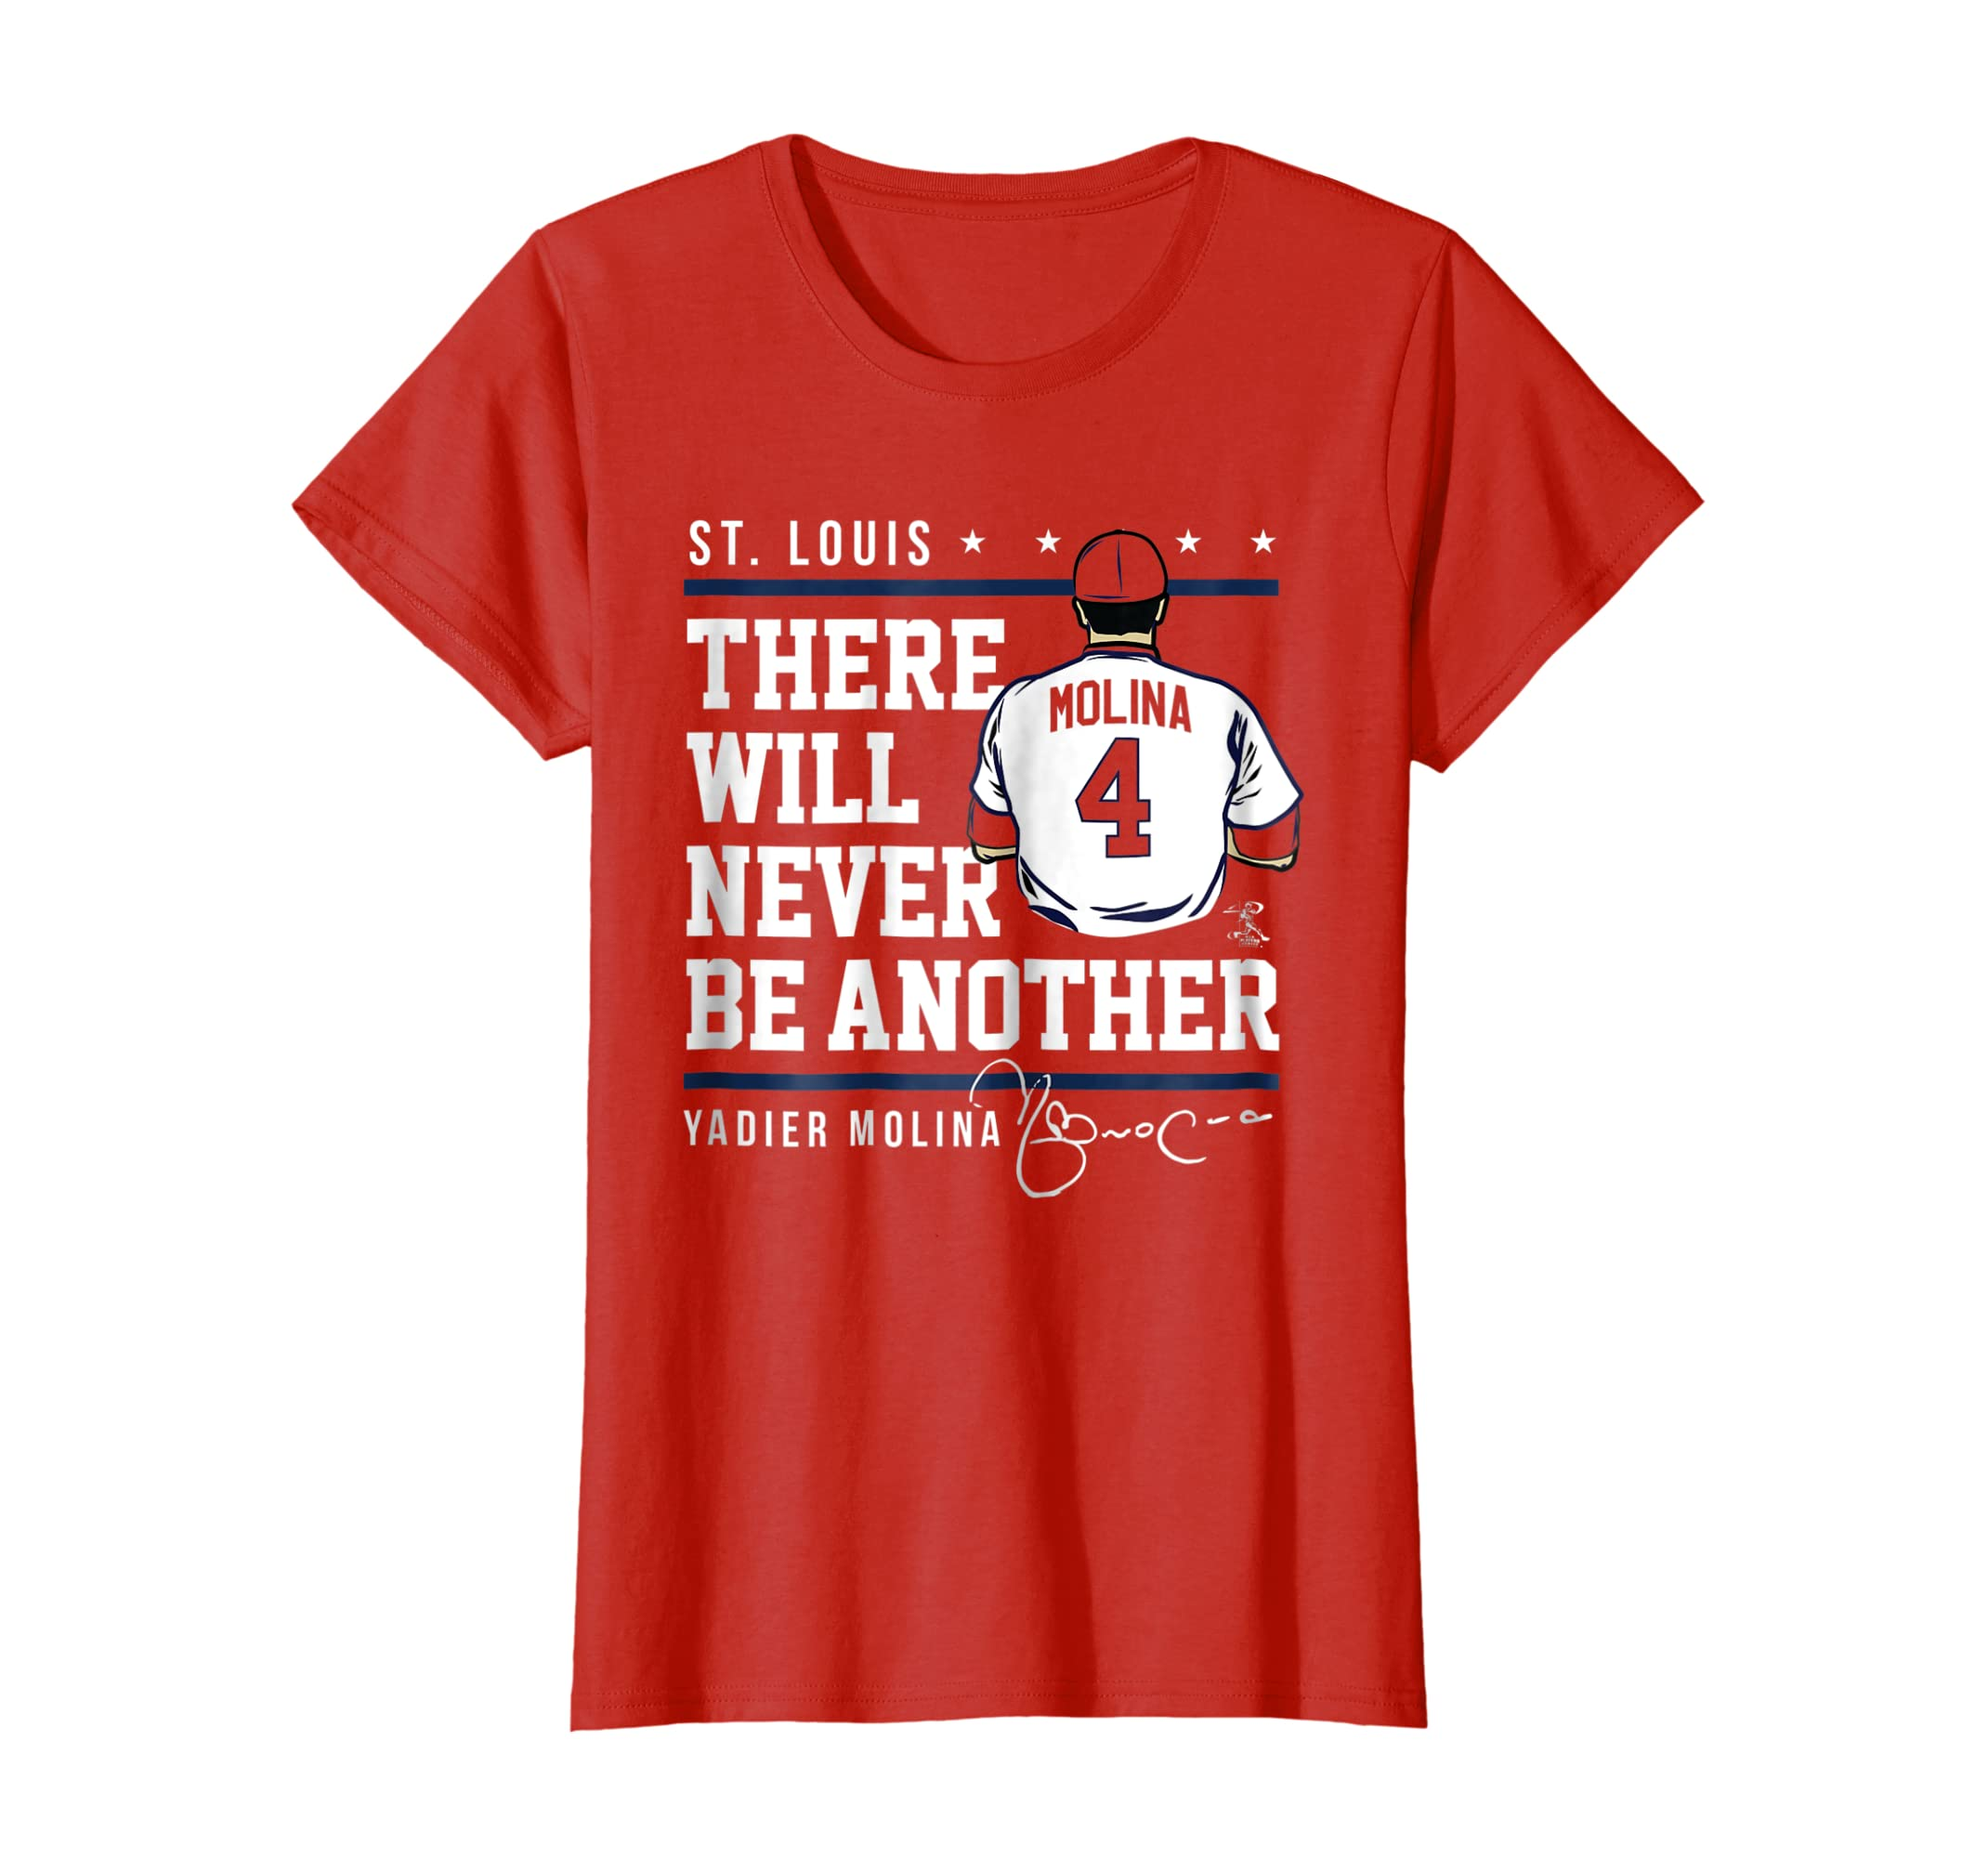 promo code 673bd d2bf5 Amazon.com: Yadier Molina Never Be Another T-Shirt - Apparel ...